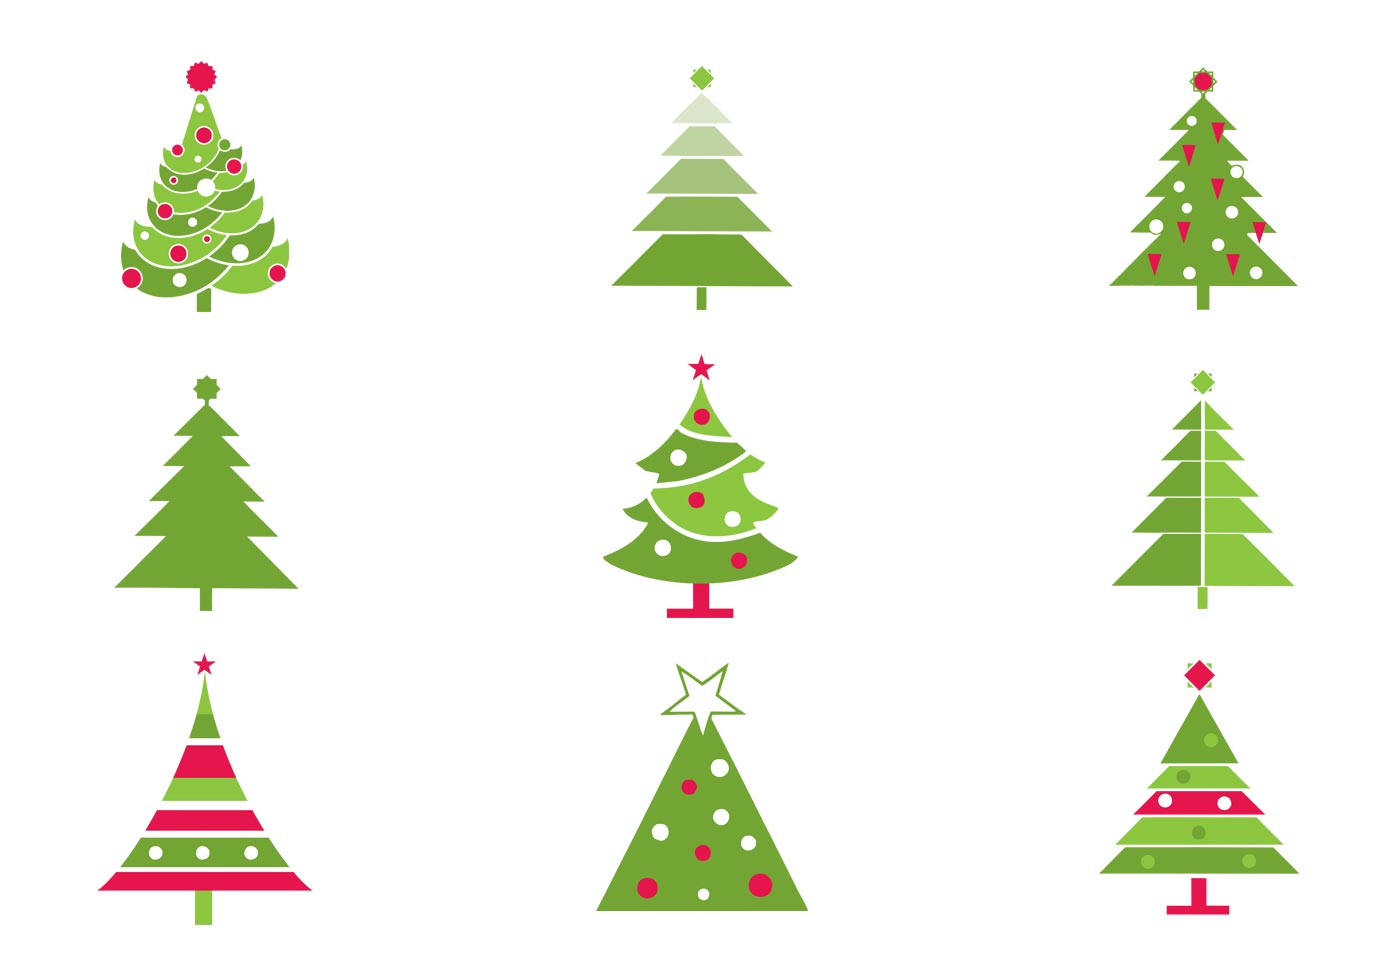 Stylized Christmas Tree Vector Pack  Download Free Vector. Diy Dollhouse Christmas Decorations. Wholesale Christmas Decorations. Christmas Lights For Sale Gold Coast. Anthropologie Christmas Window Decorations. Unique Christmas Ornaments Online. Homemade Christmas Decorations Martha. Animated Christmas Decorations Ebay. Christmas Decorations Amazon India